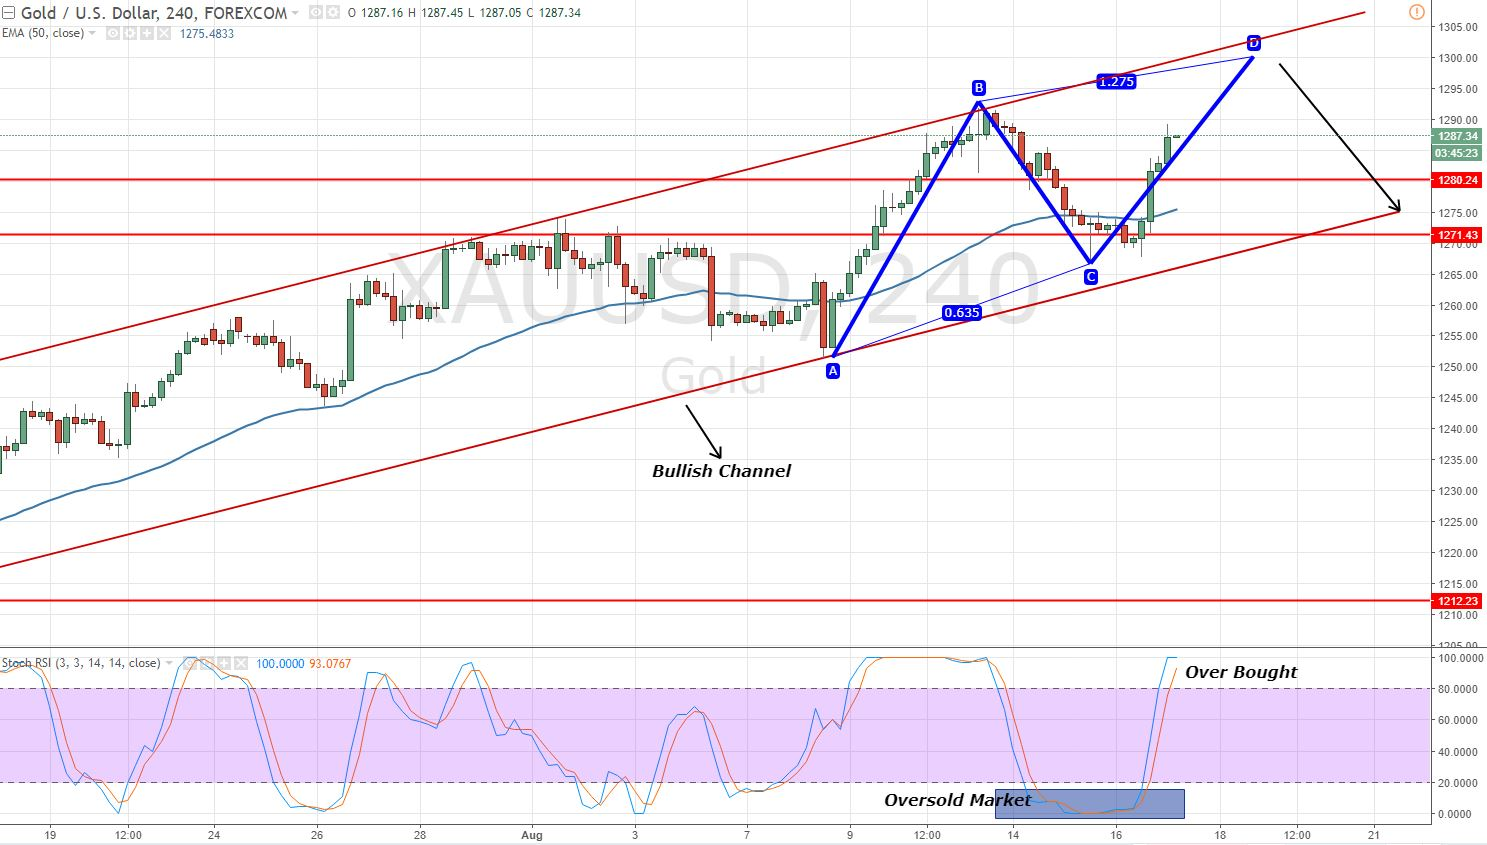 Gold - 4 Hour Chart - ABCD Pattern